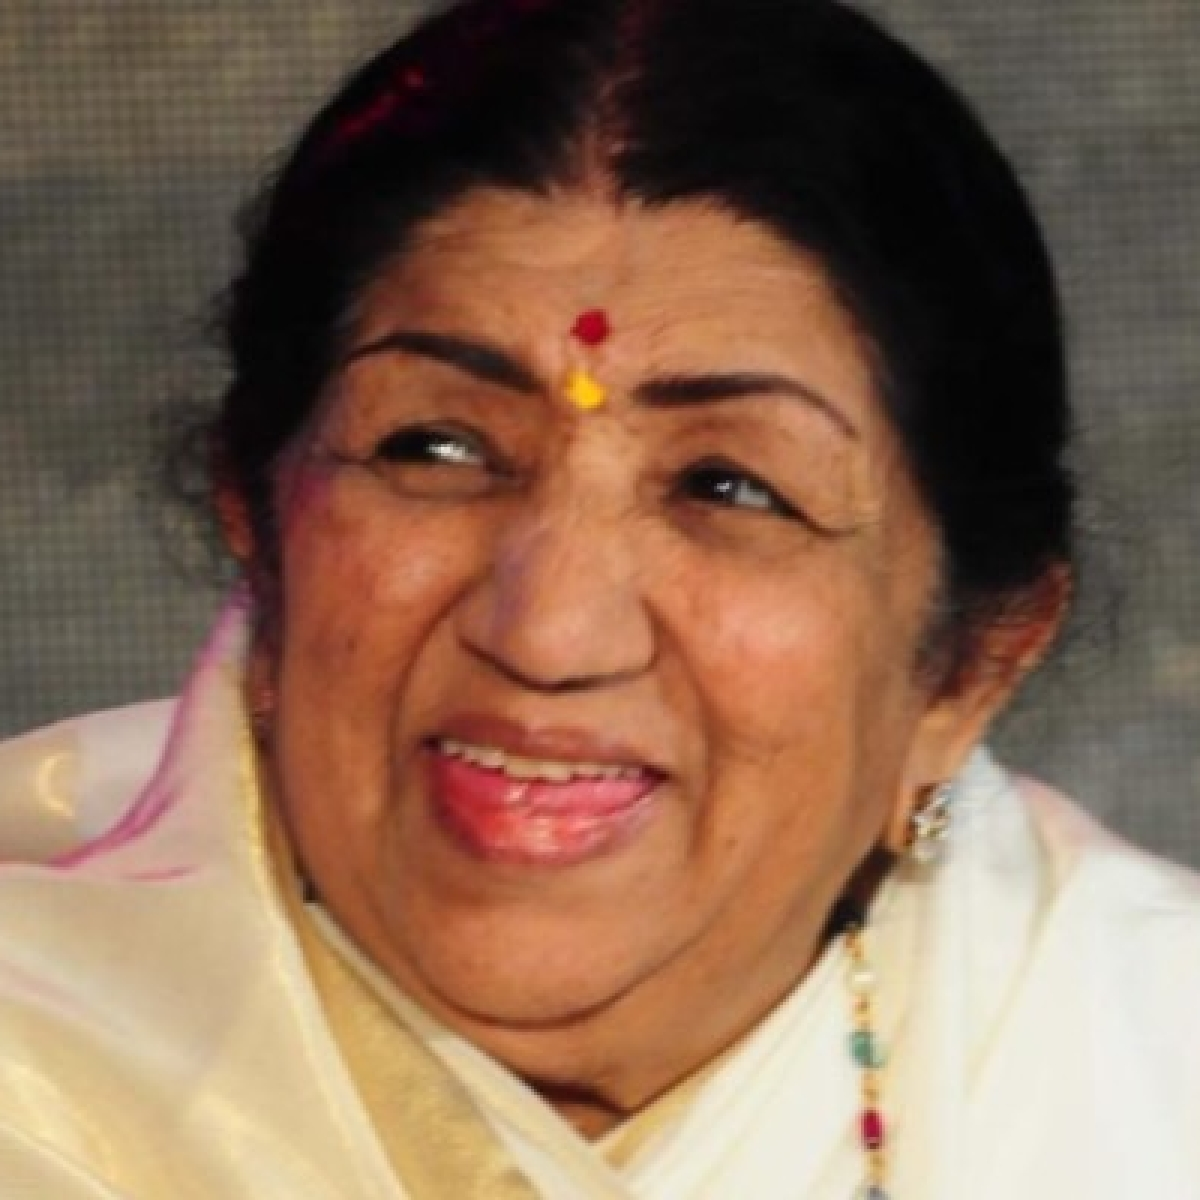 Health issues make Lata Mangeshkar second most searched personality on Google